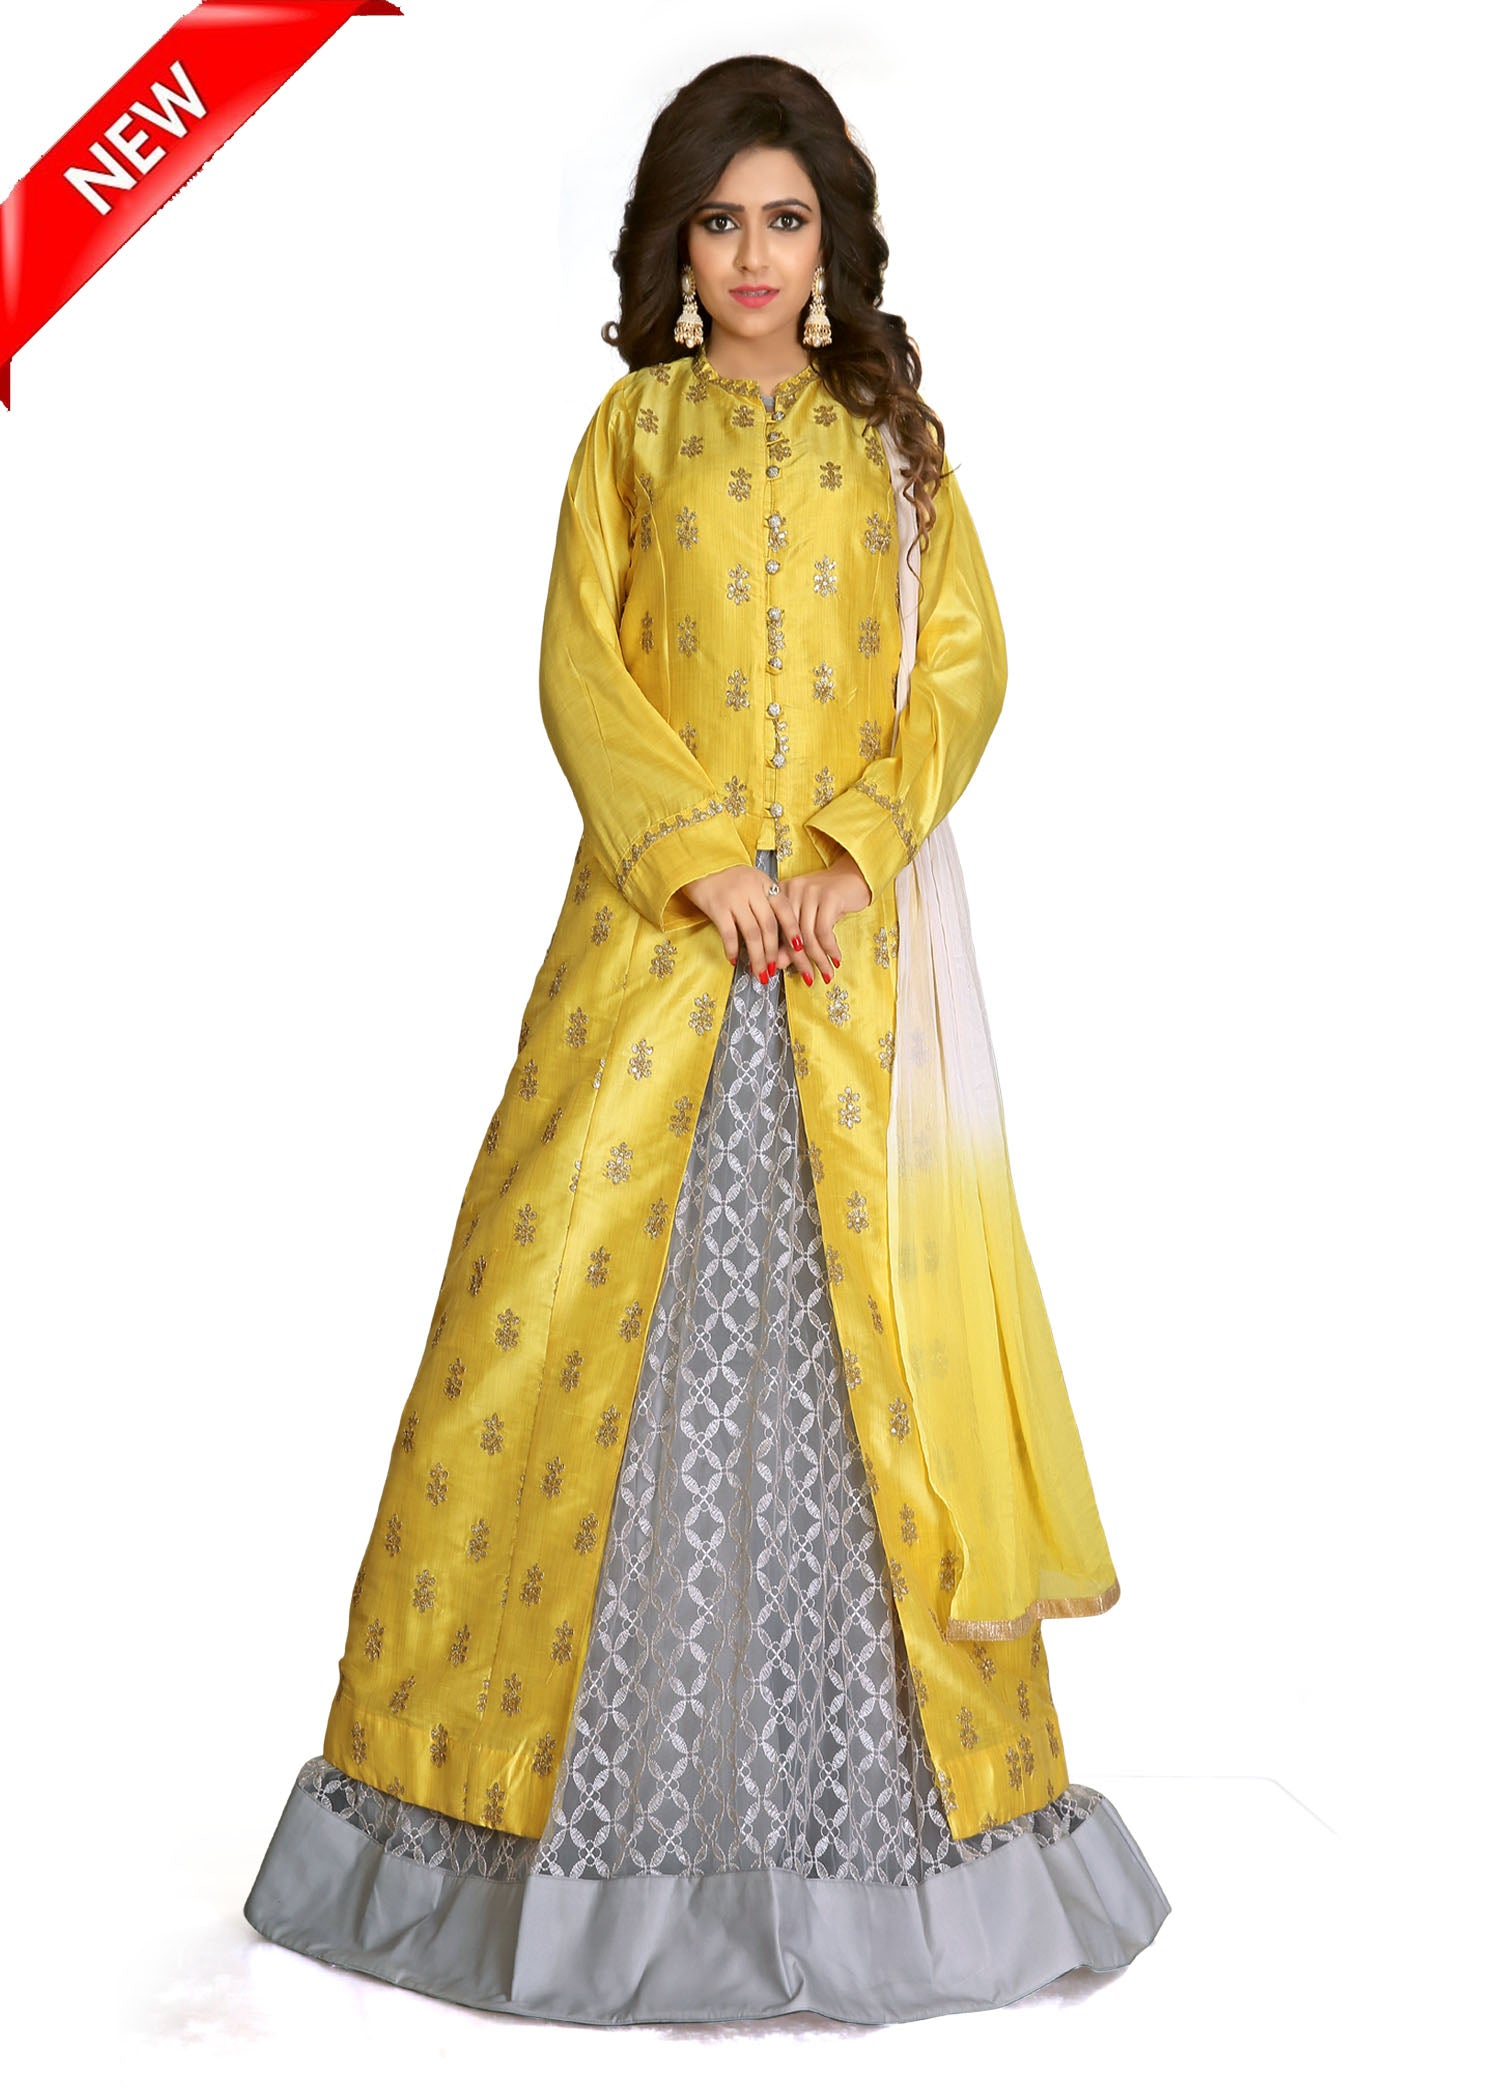 Lacha-Skirt suit with contrast embroidery-Lemon-Grey